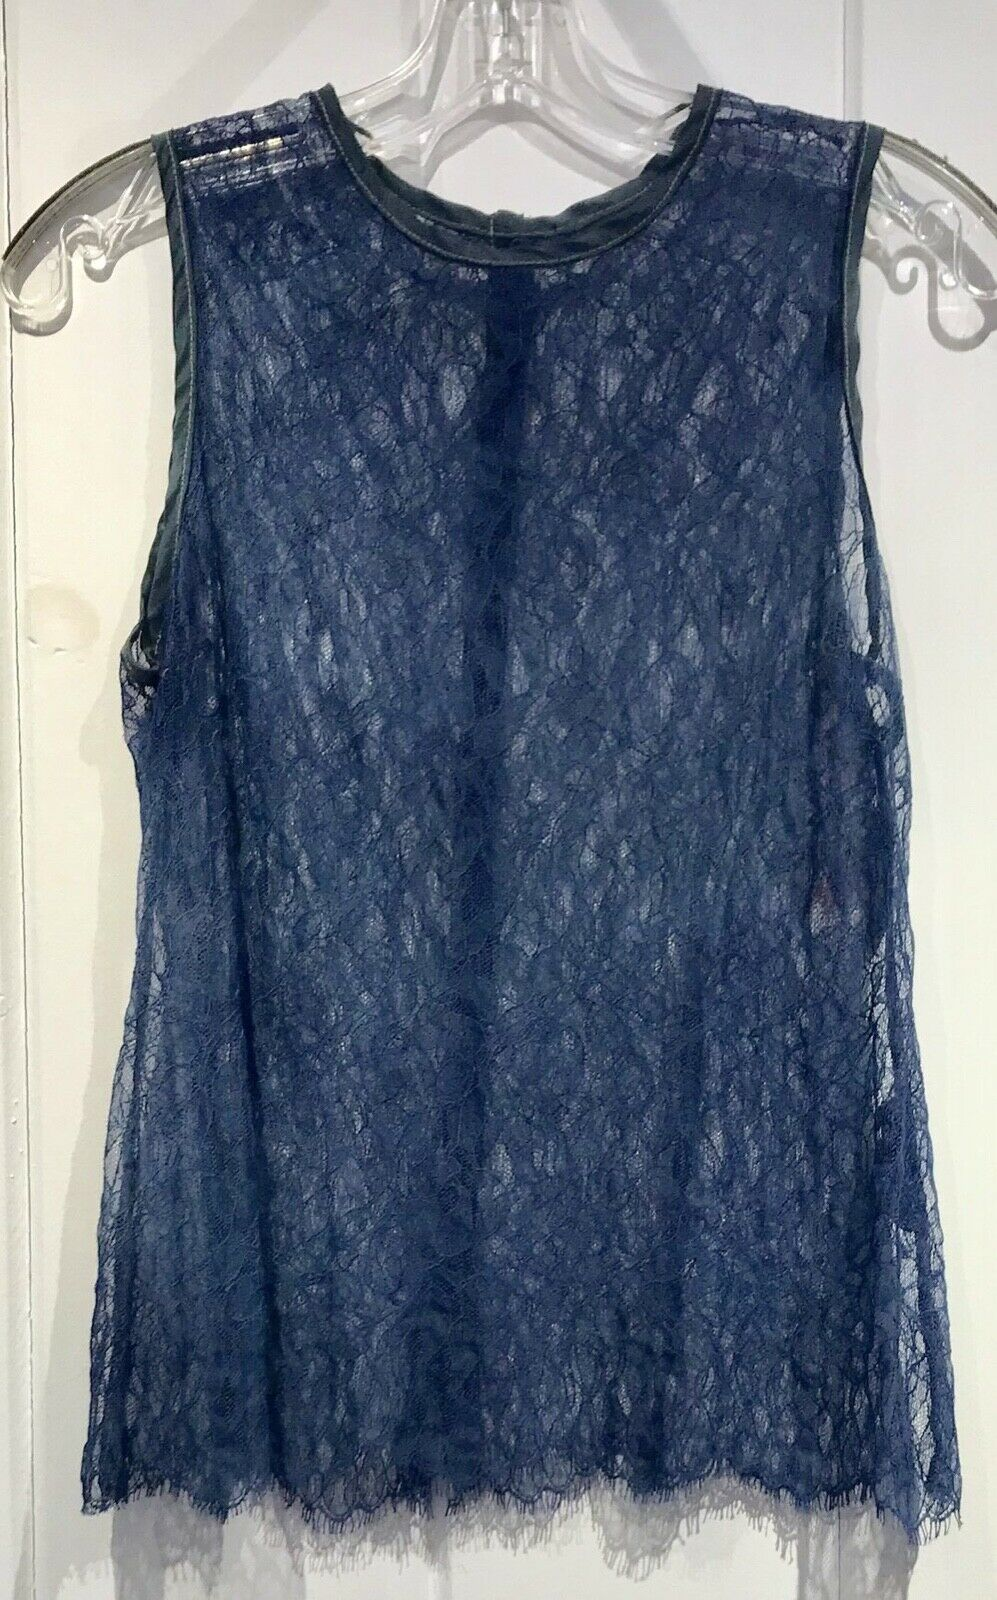 Robin Kaplan Lace Leaves Shell in Blue, Sz 2, on Sale